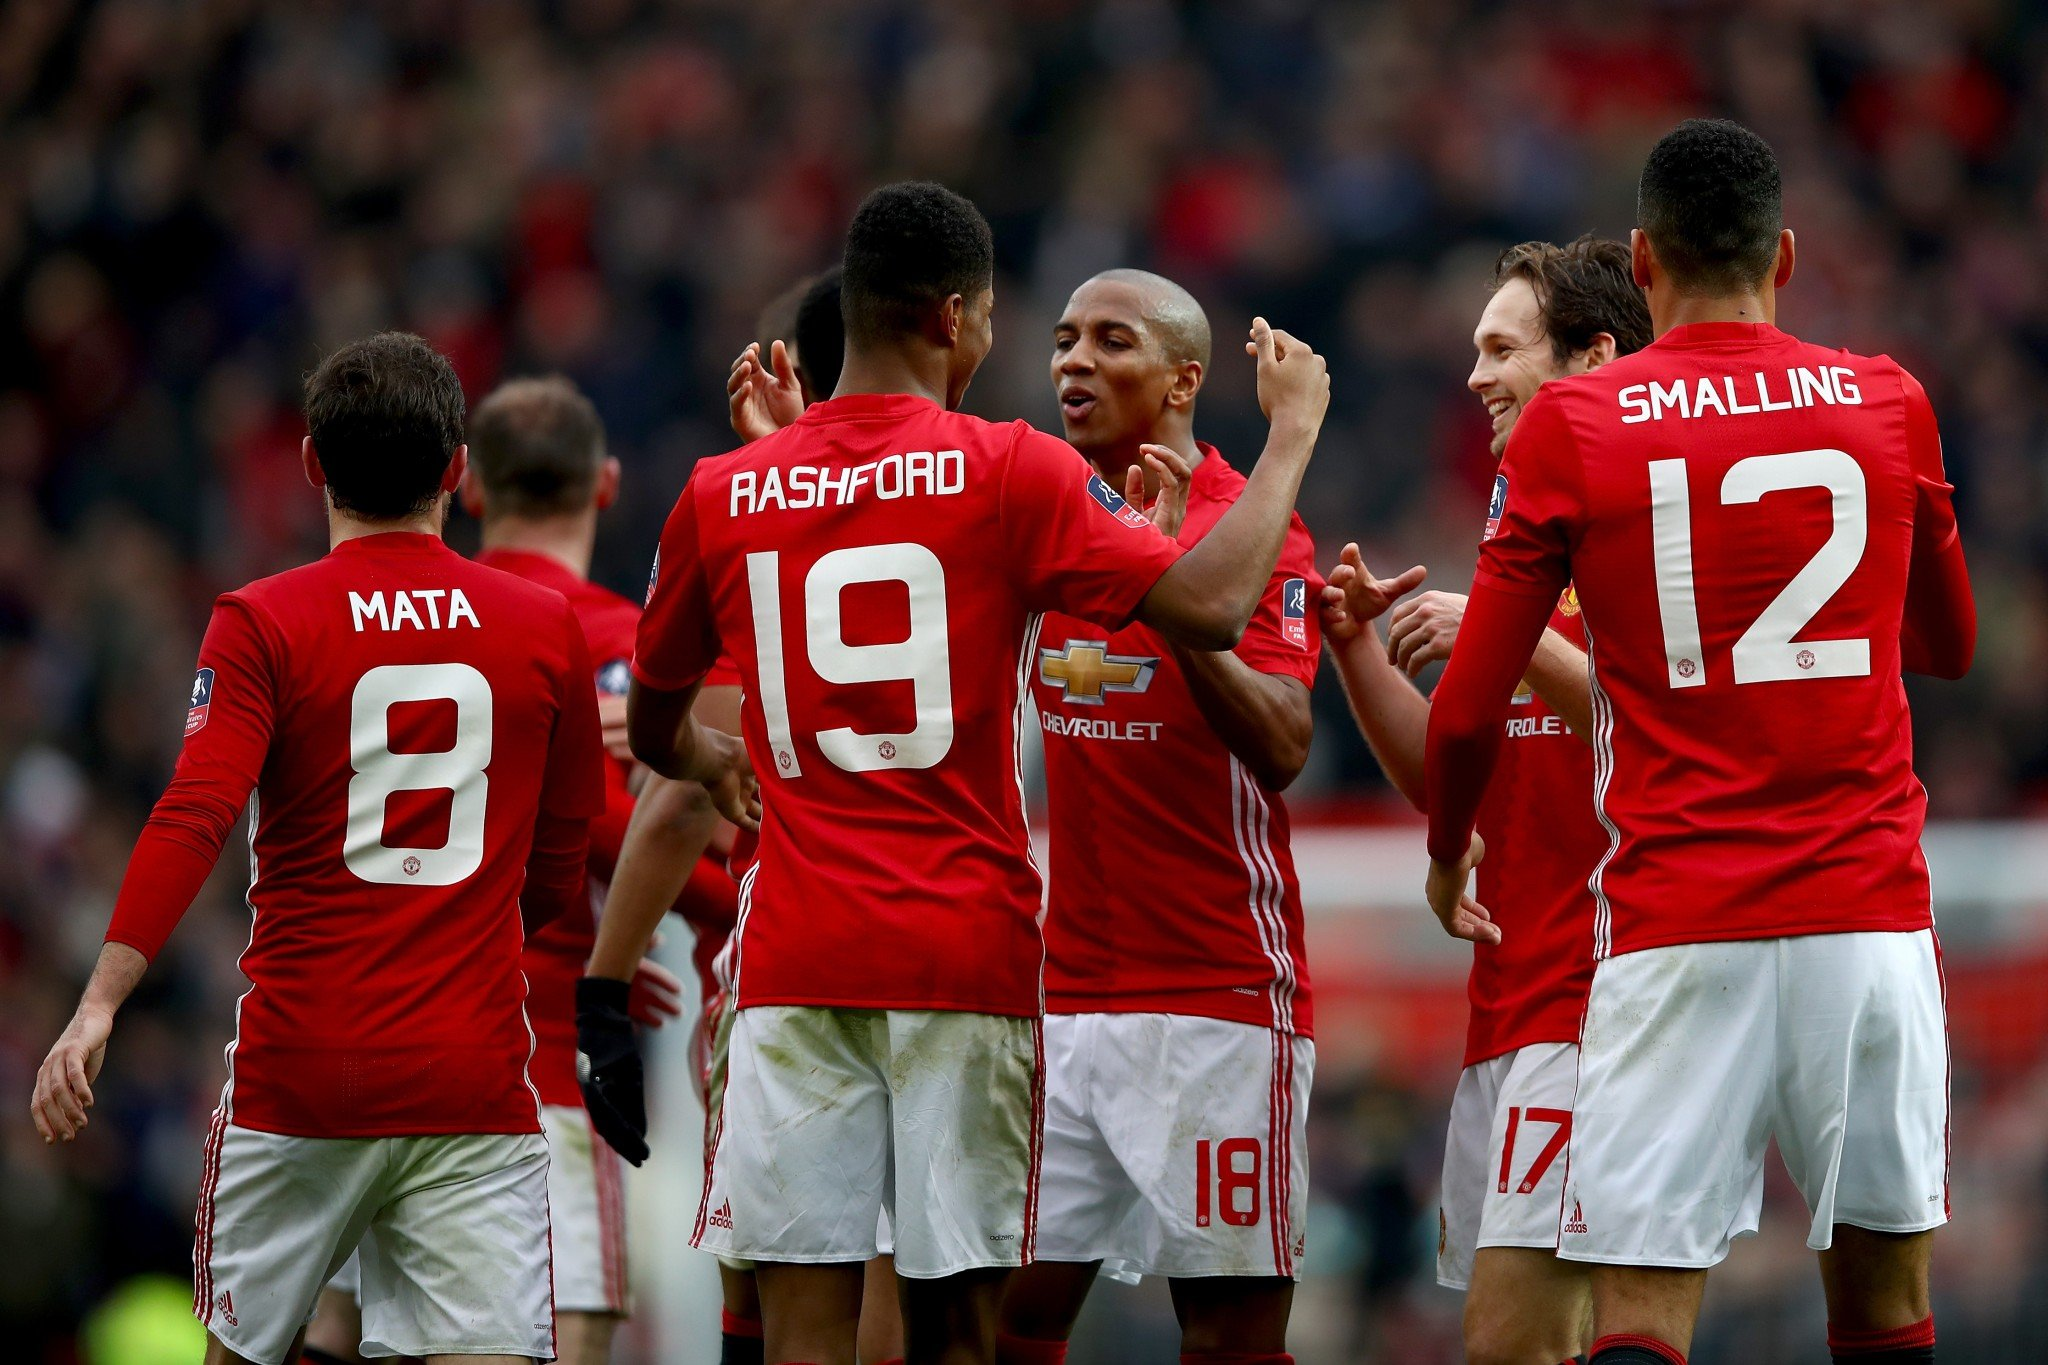 Manchester United swept aside Reading 4-0 in the third round